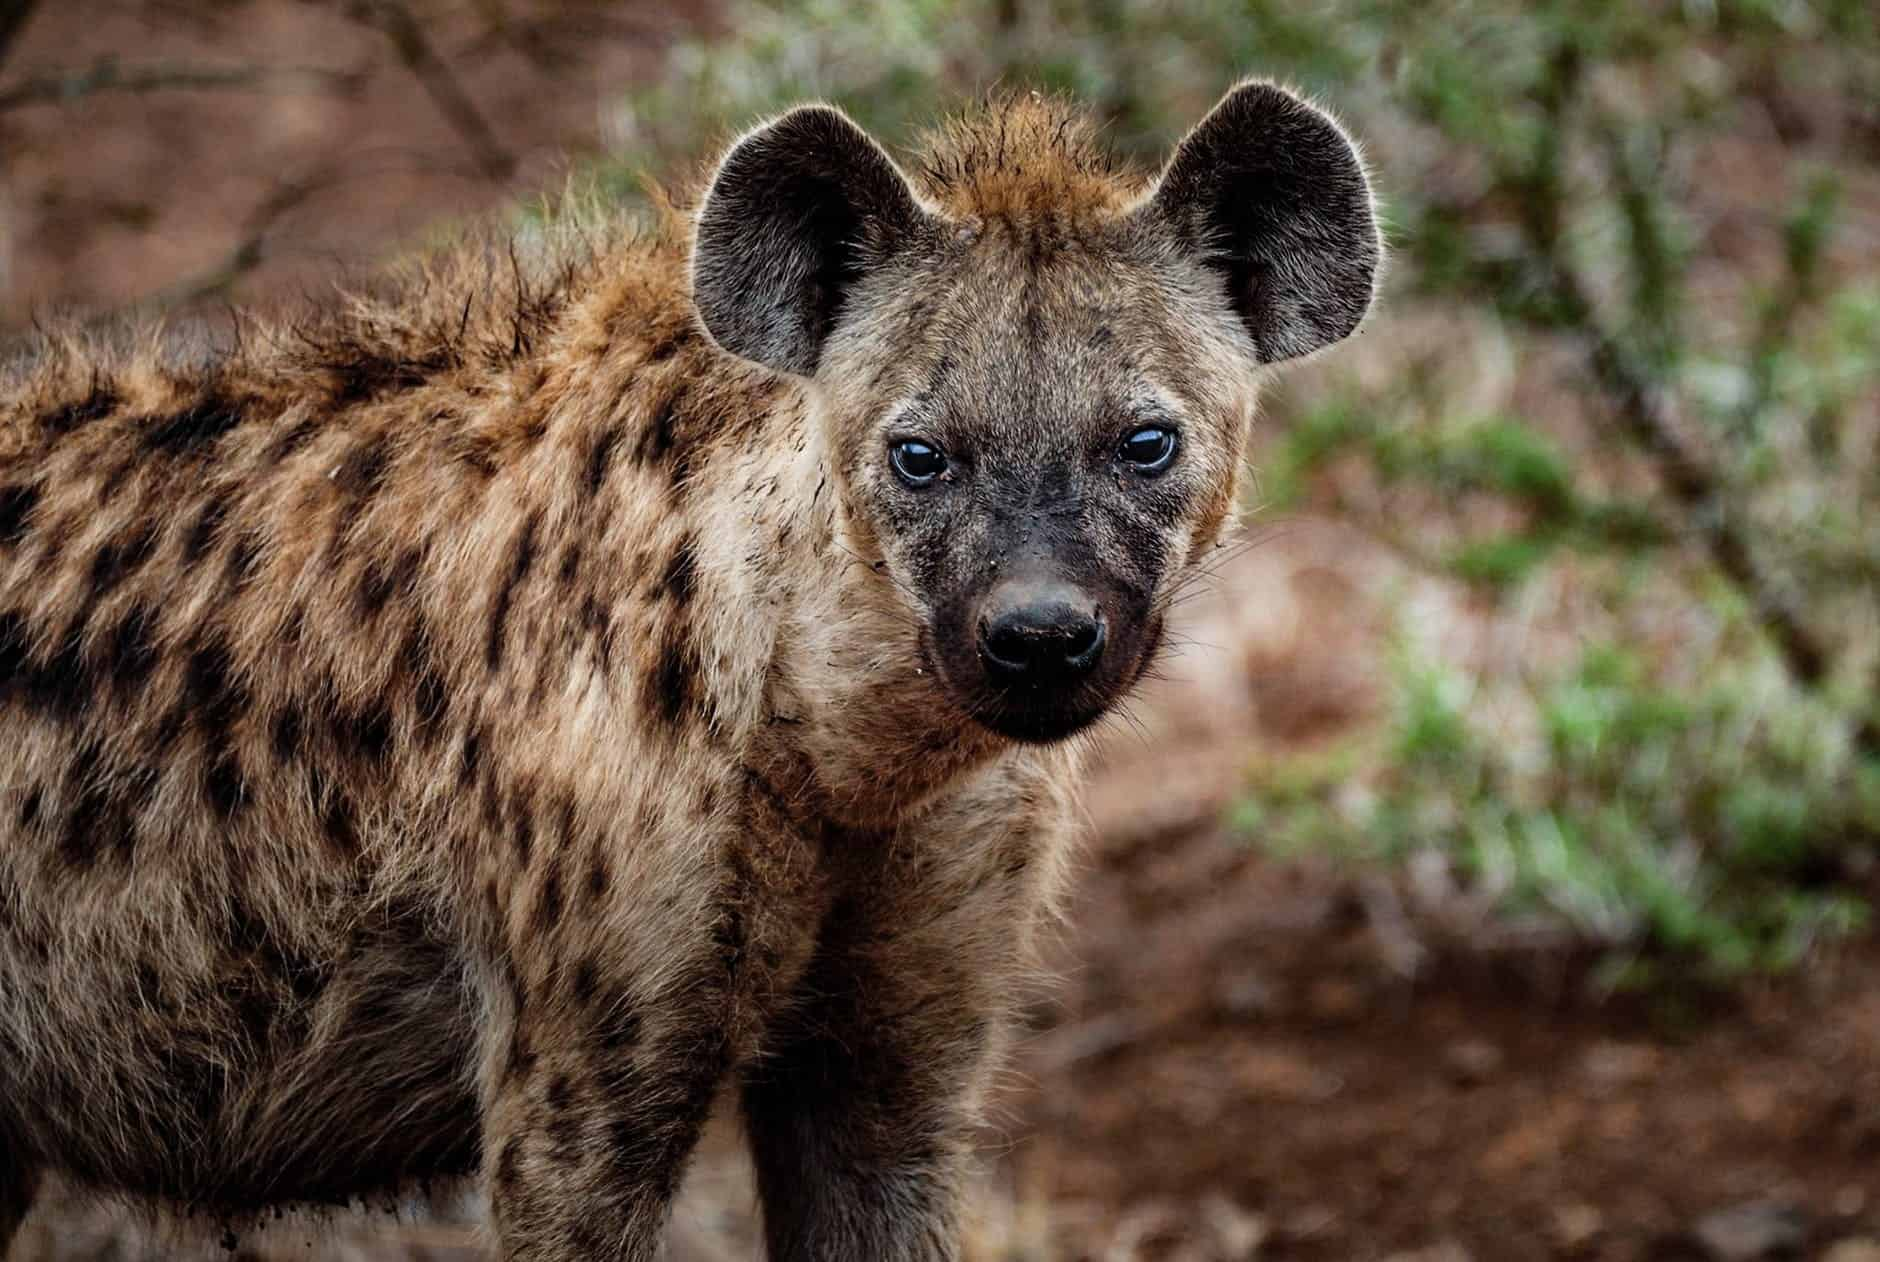 Where are Hyenas found?